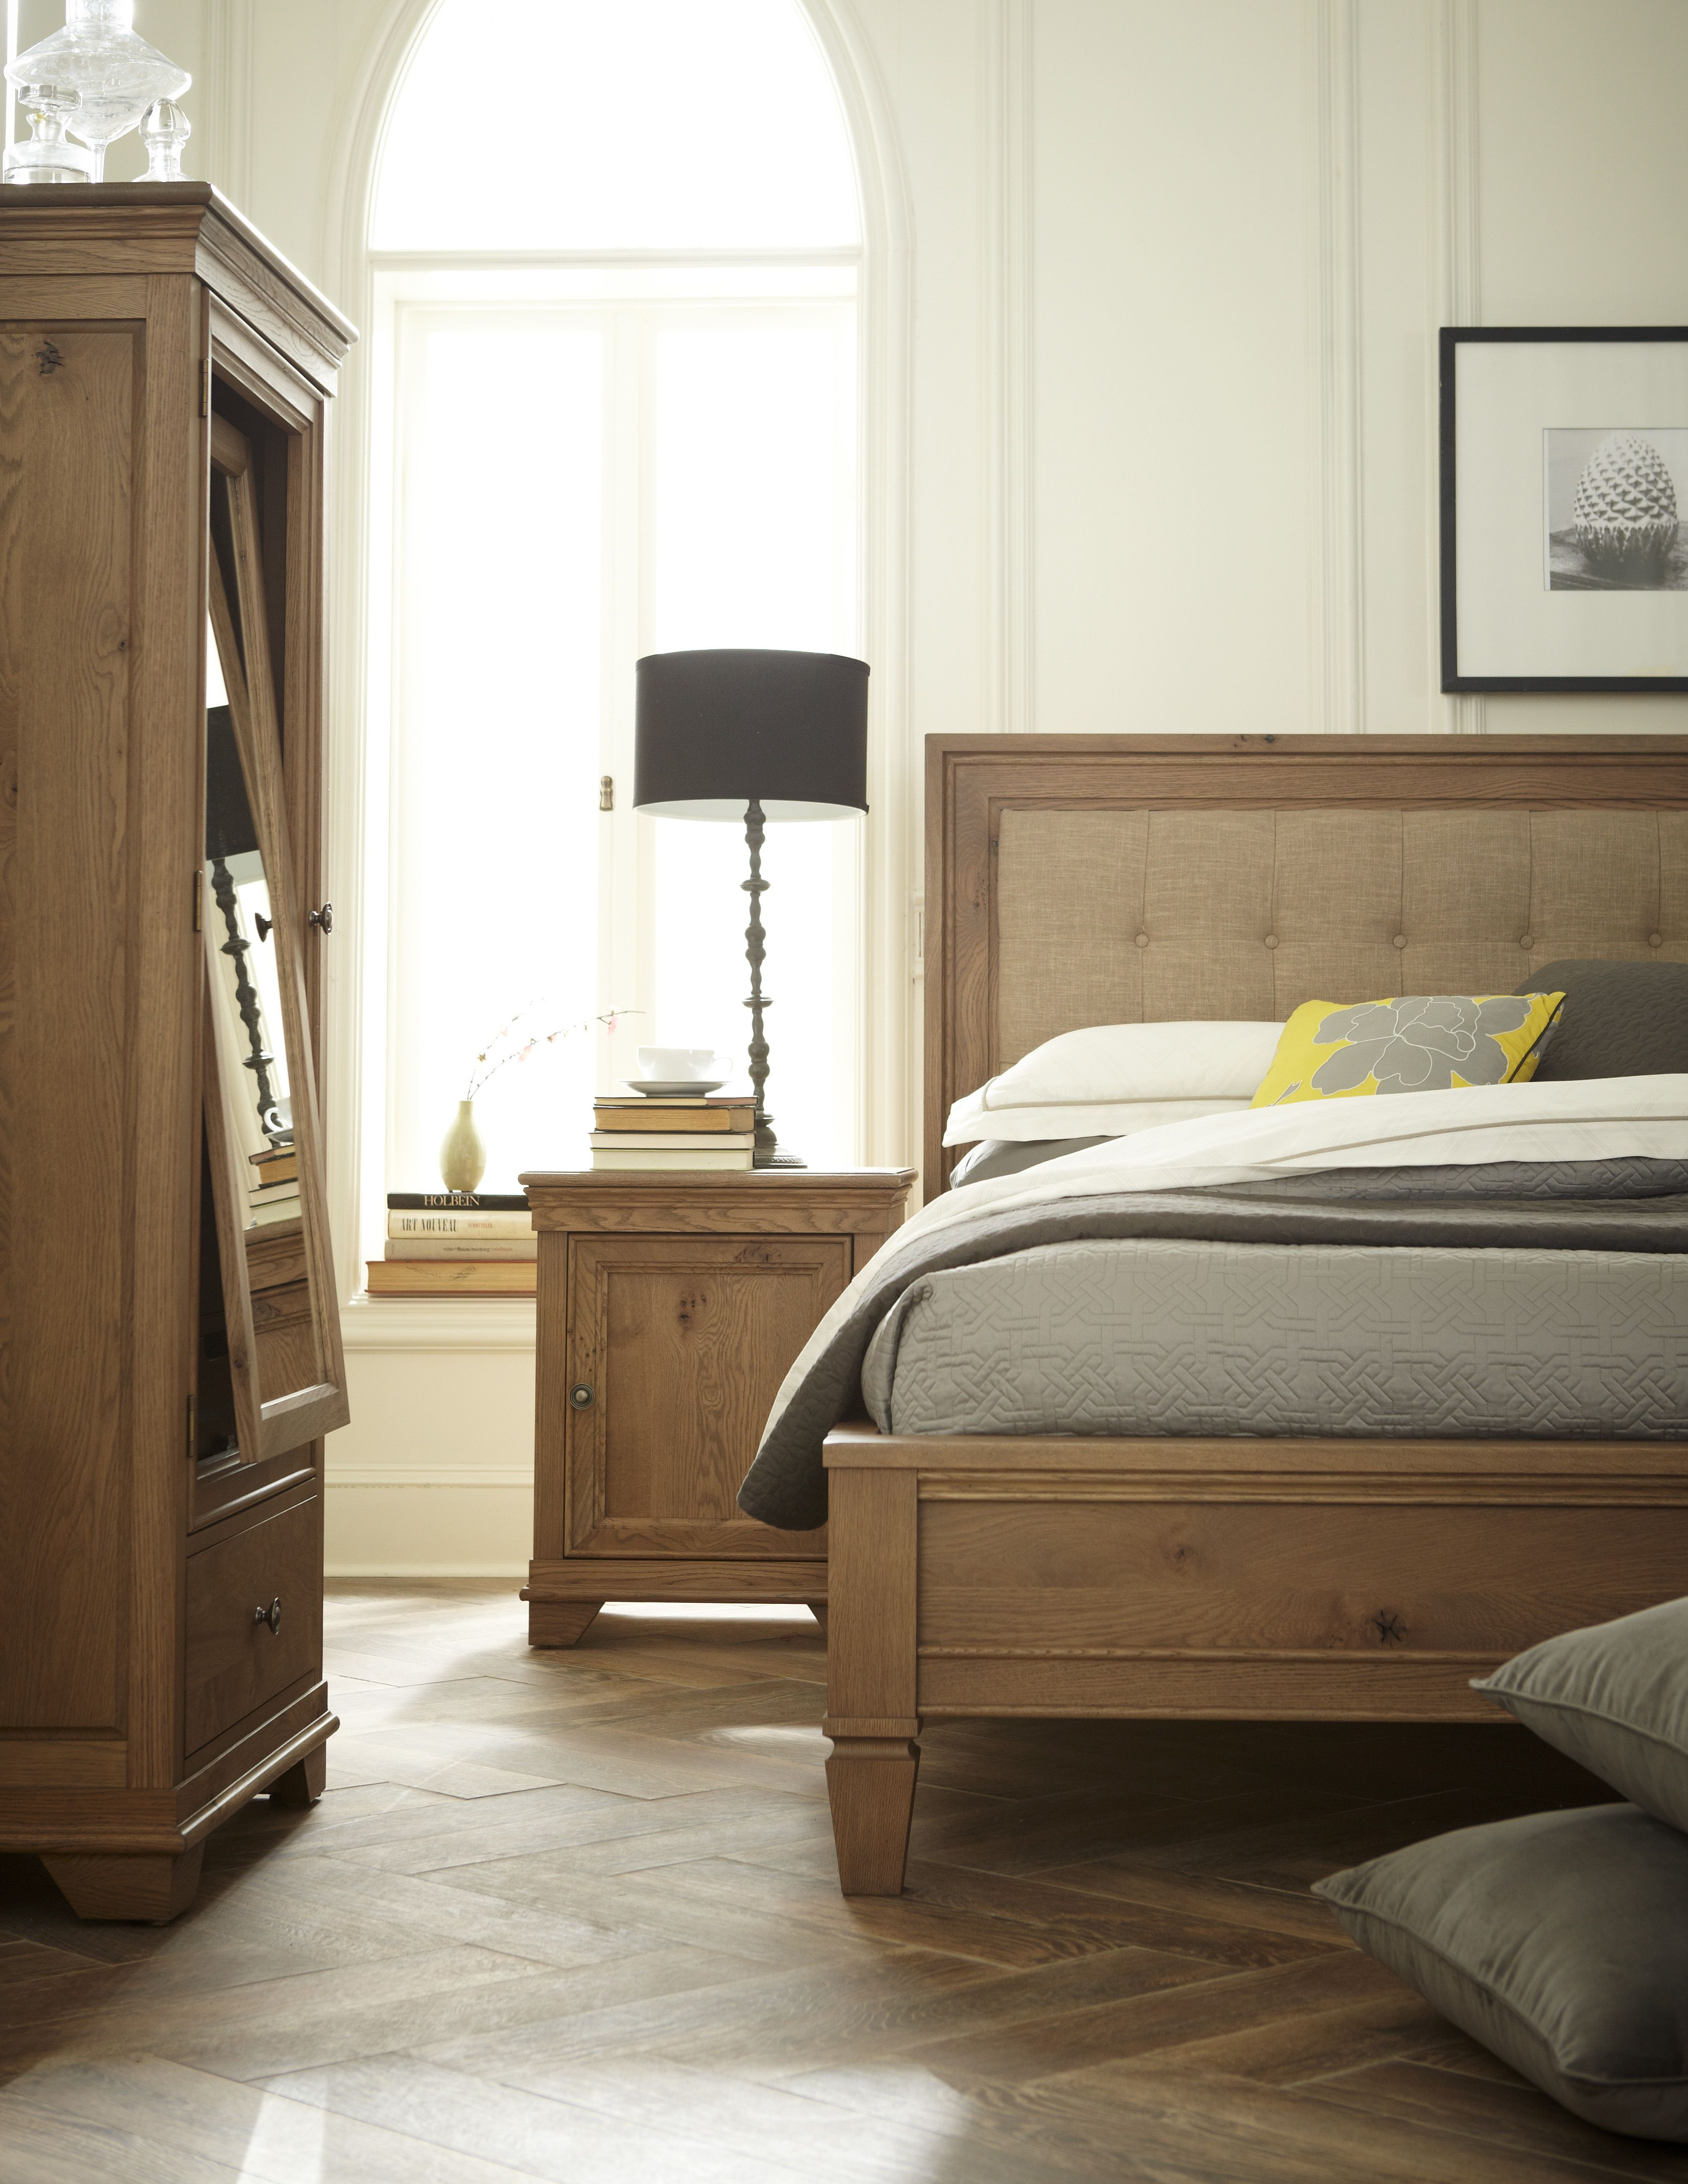 Great looking rustic oak bedroom, available in the great